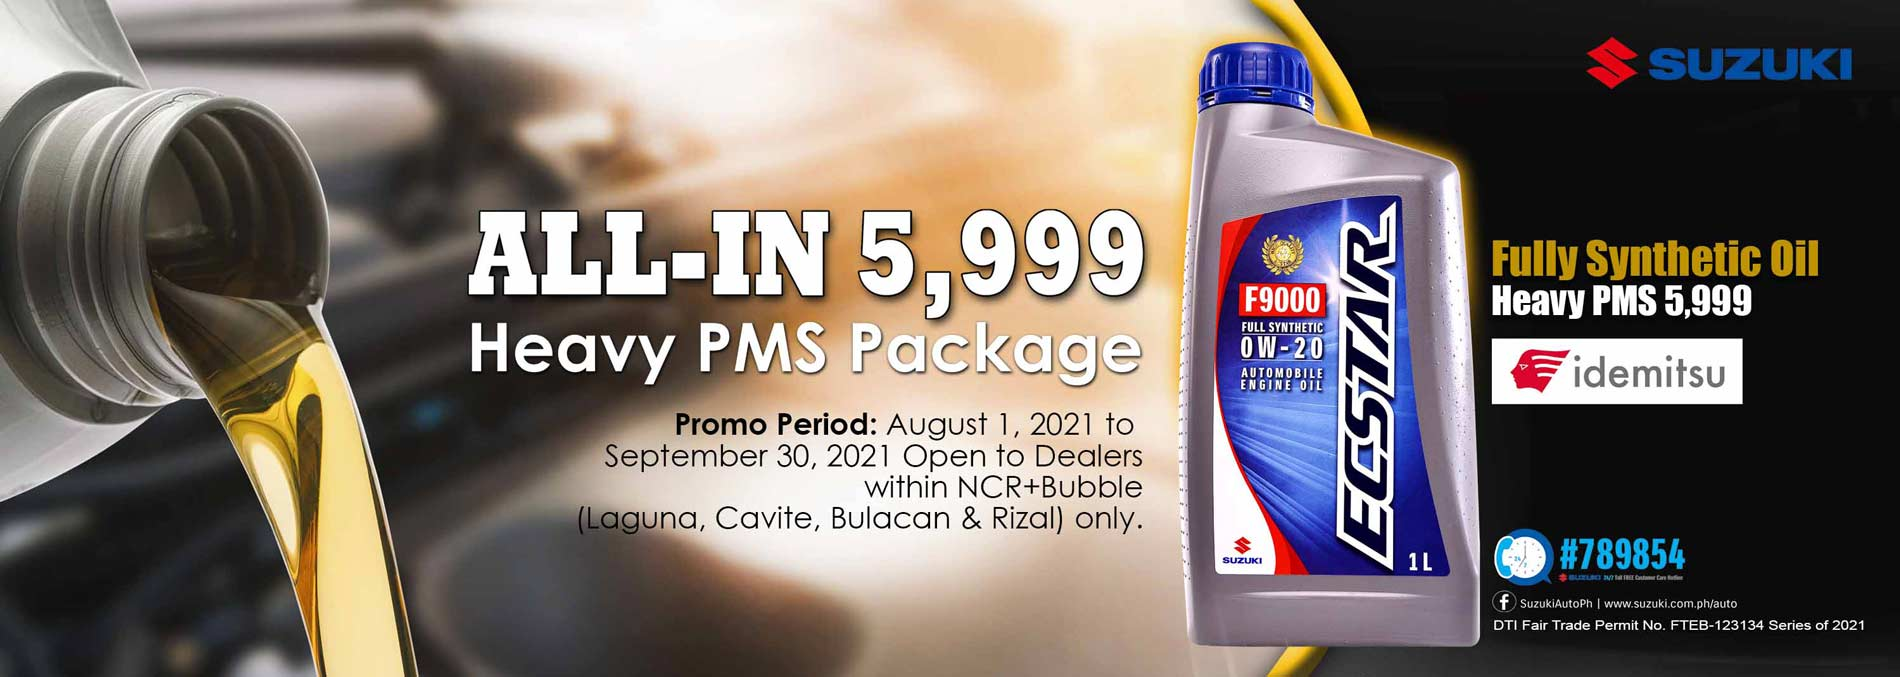 All-IN 5,999 HEAVY PMS PACKAGE PROMO